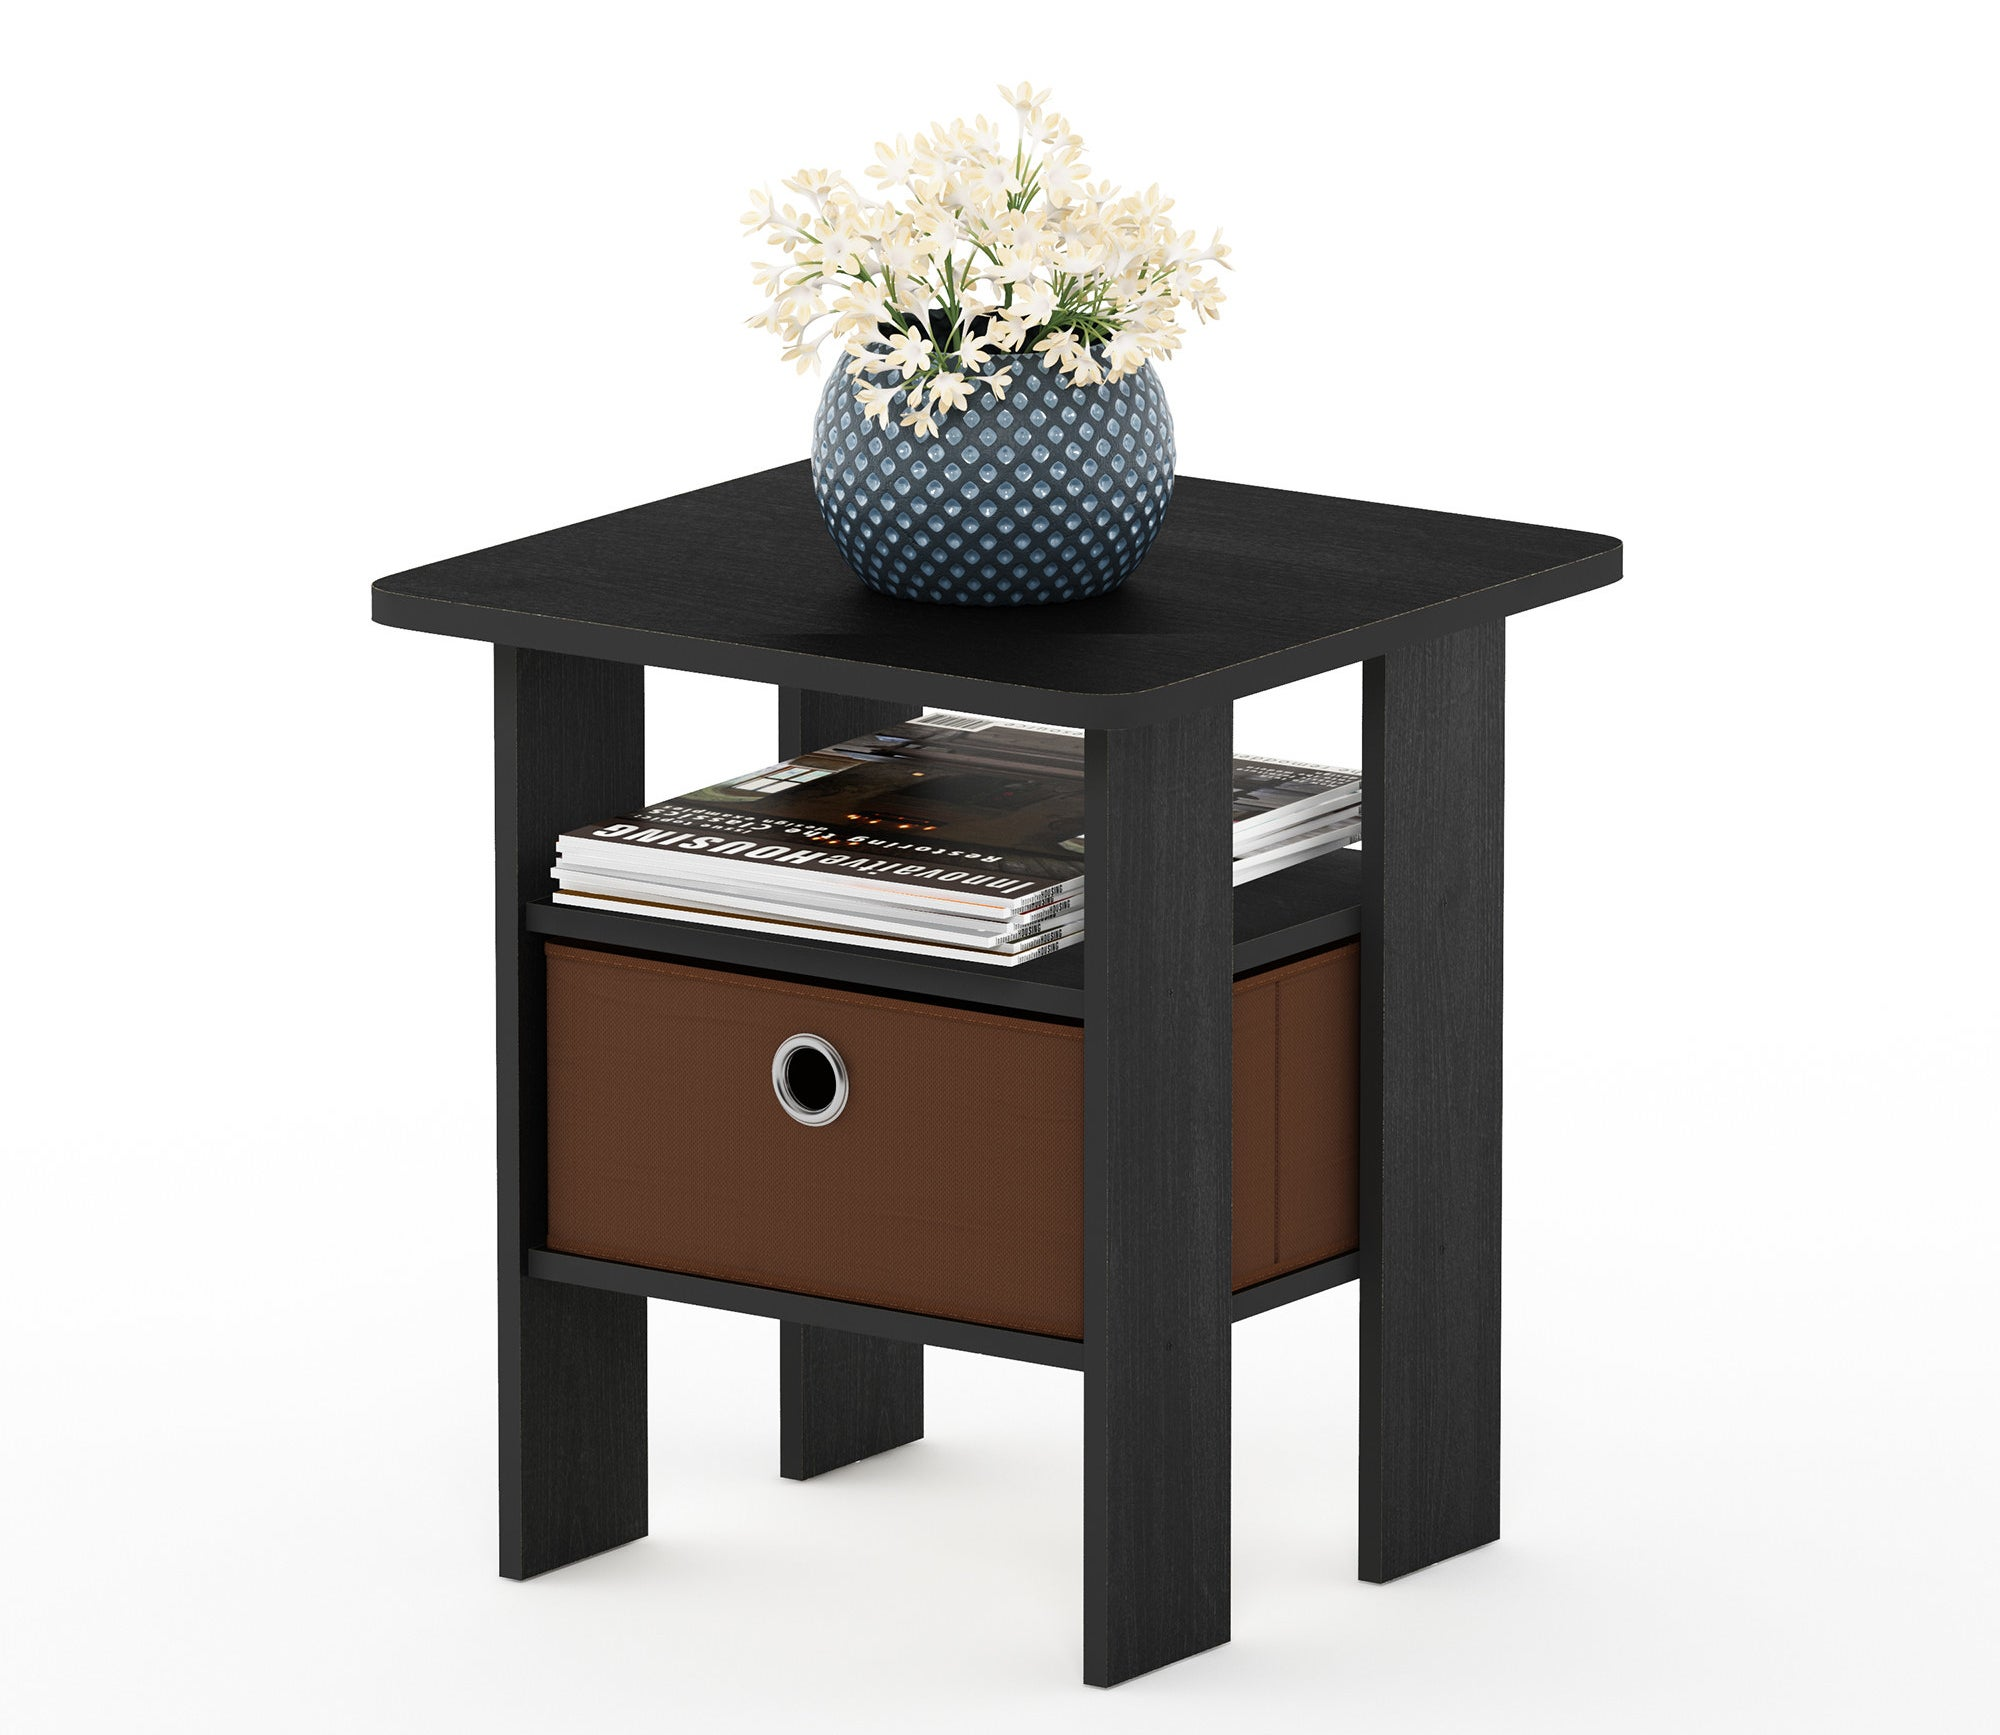 End table Nightstand in Americano/Medium Brown